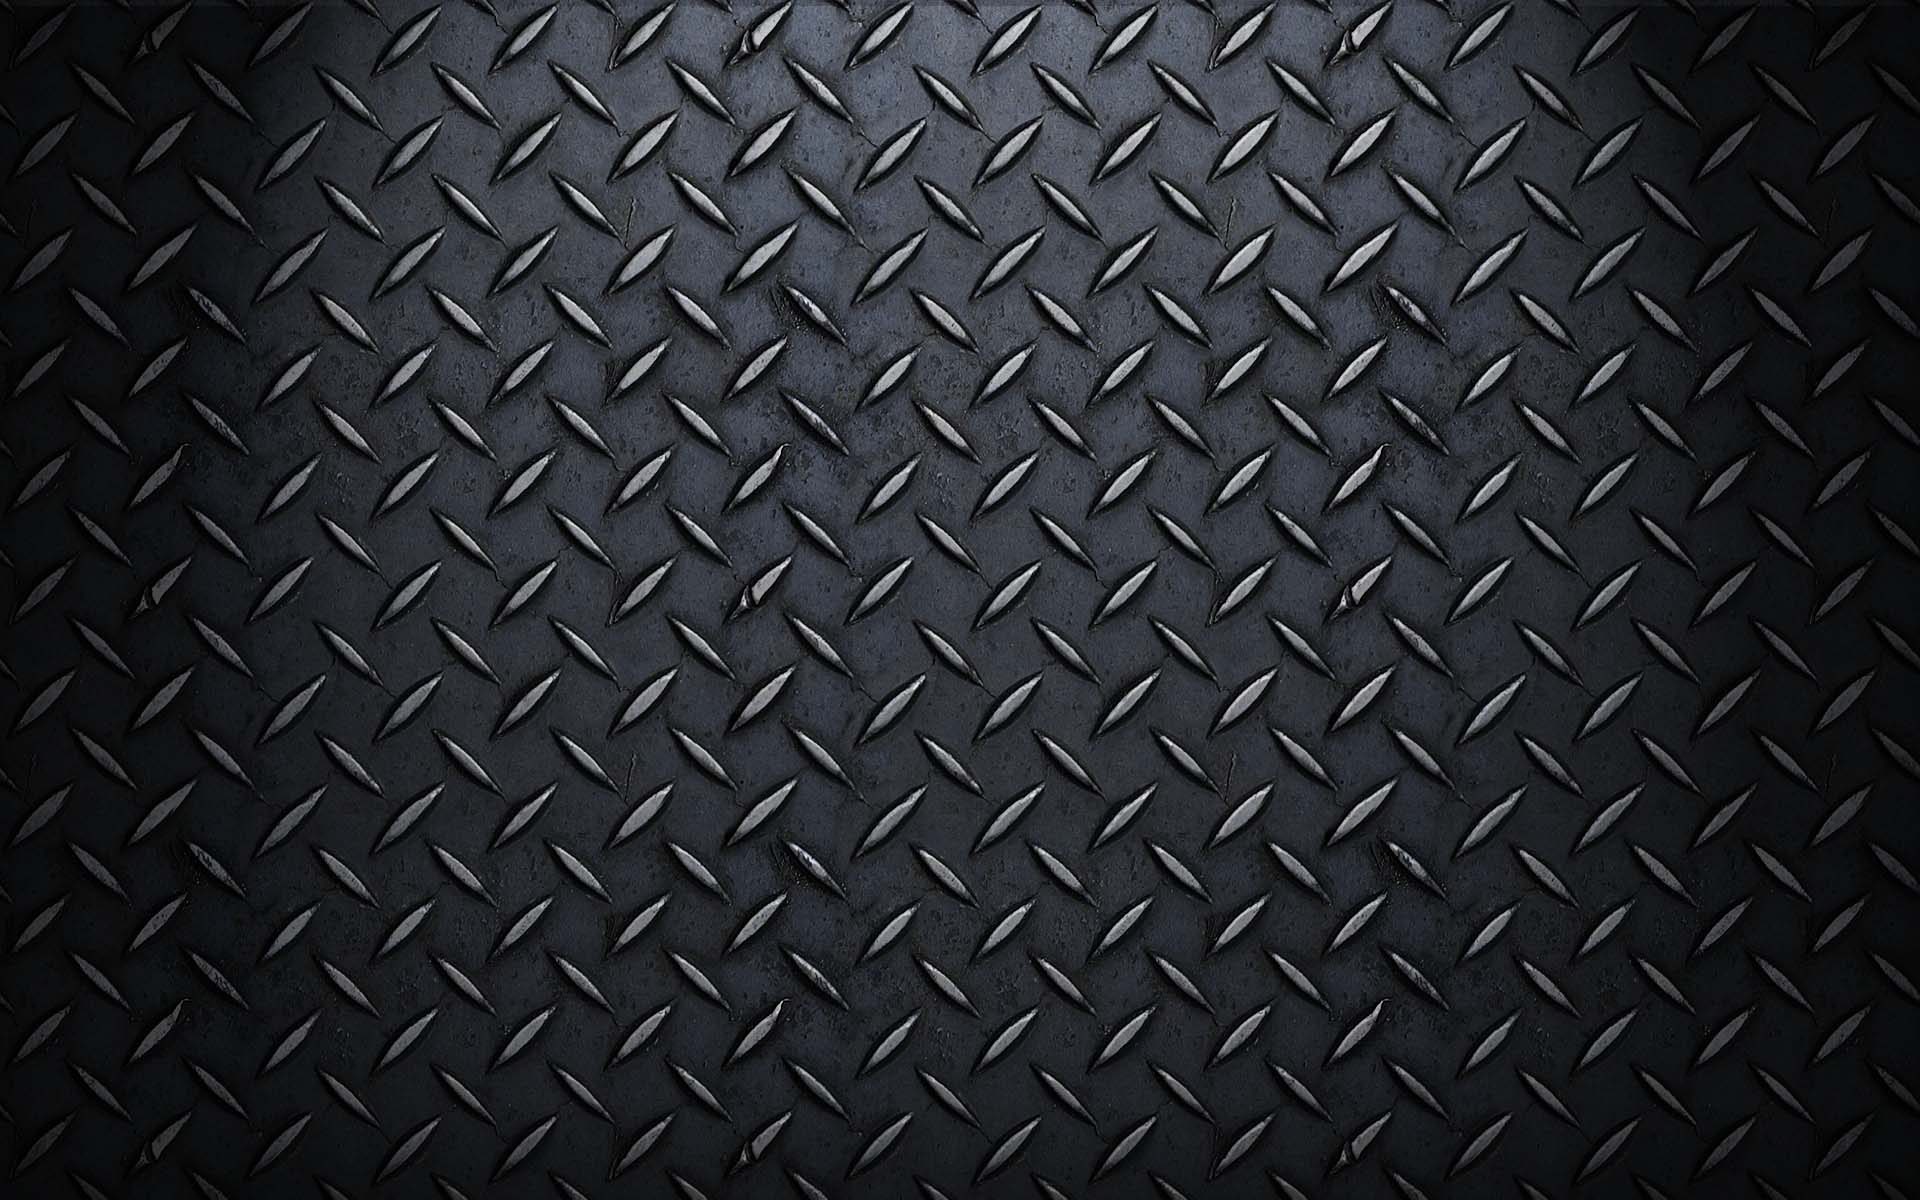 42 HD Textured And Simple Wallpapers For Your Mobile Devices